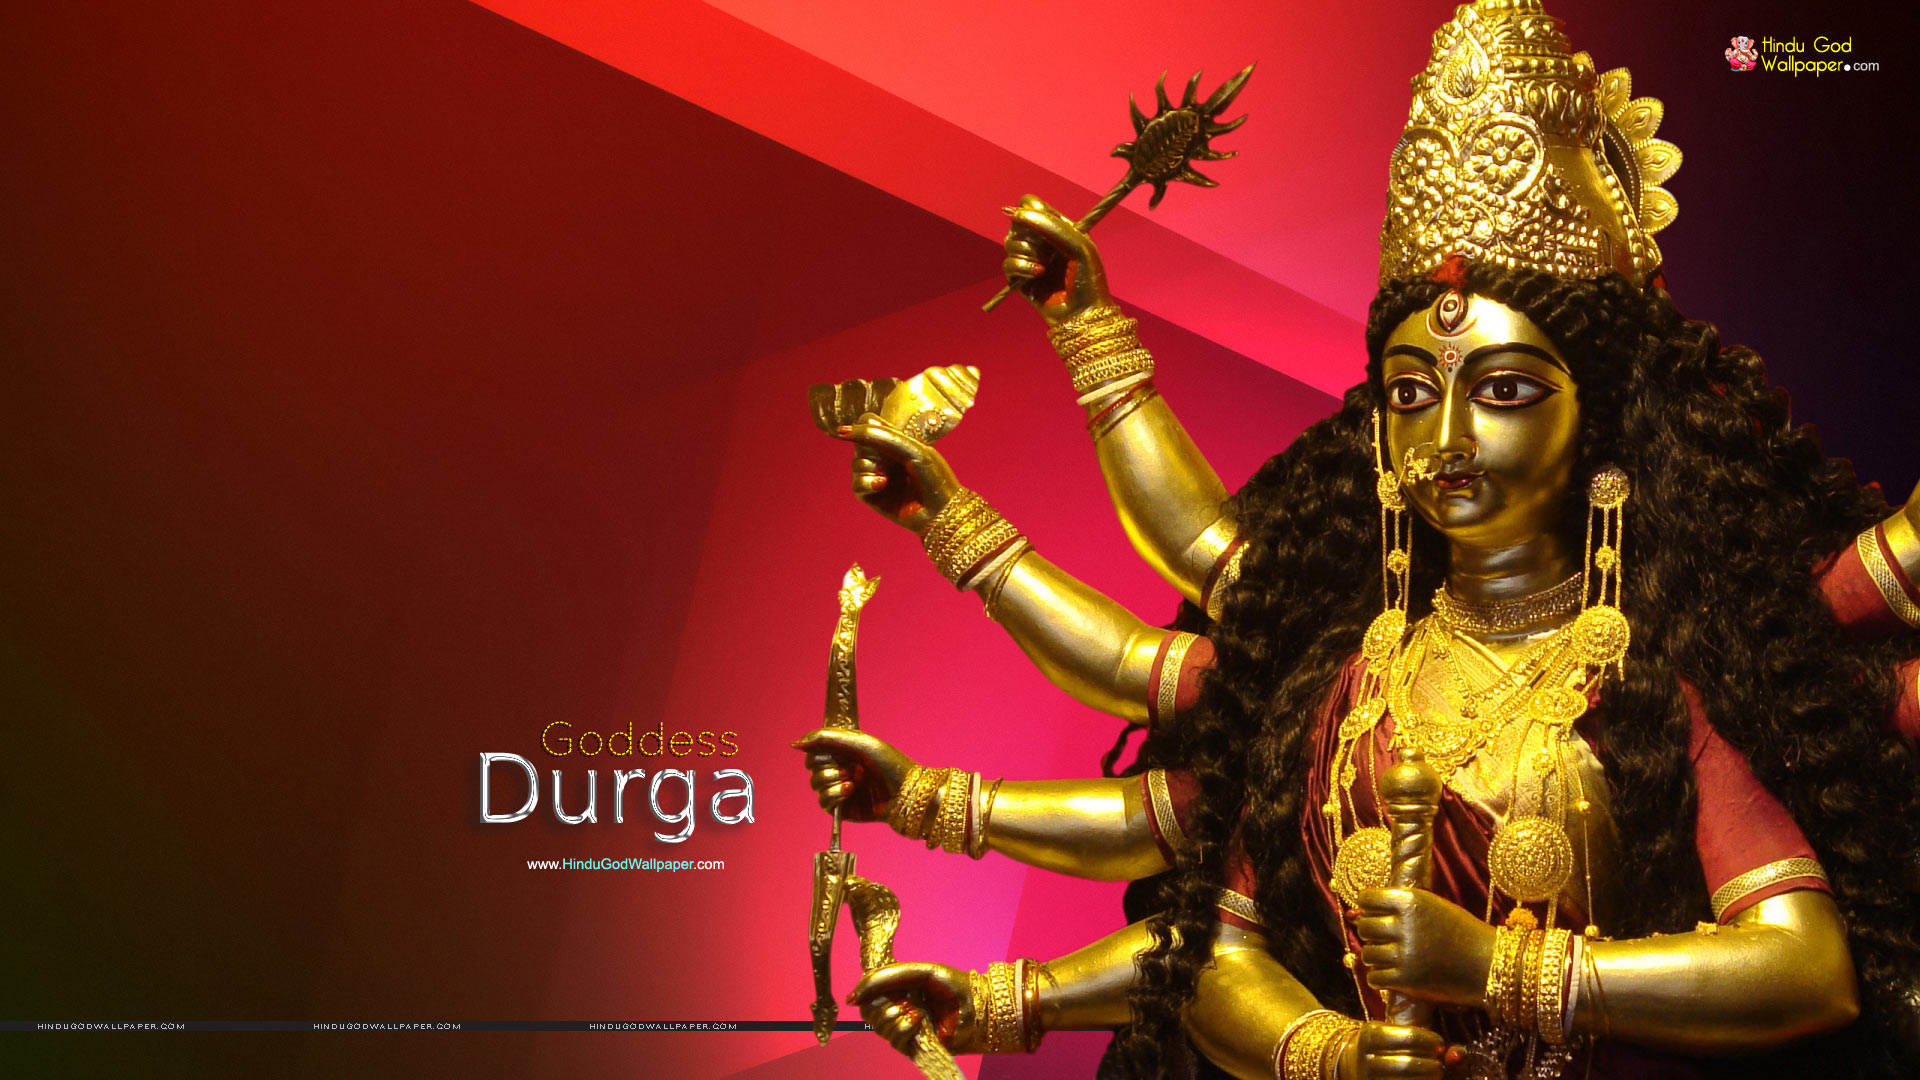 Durga Puja Hd Wallpaper: Durga Puja HD Wallpaper For Desktop